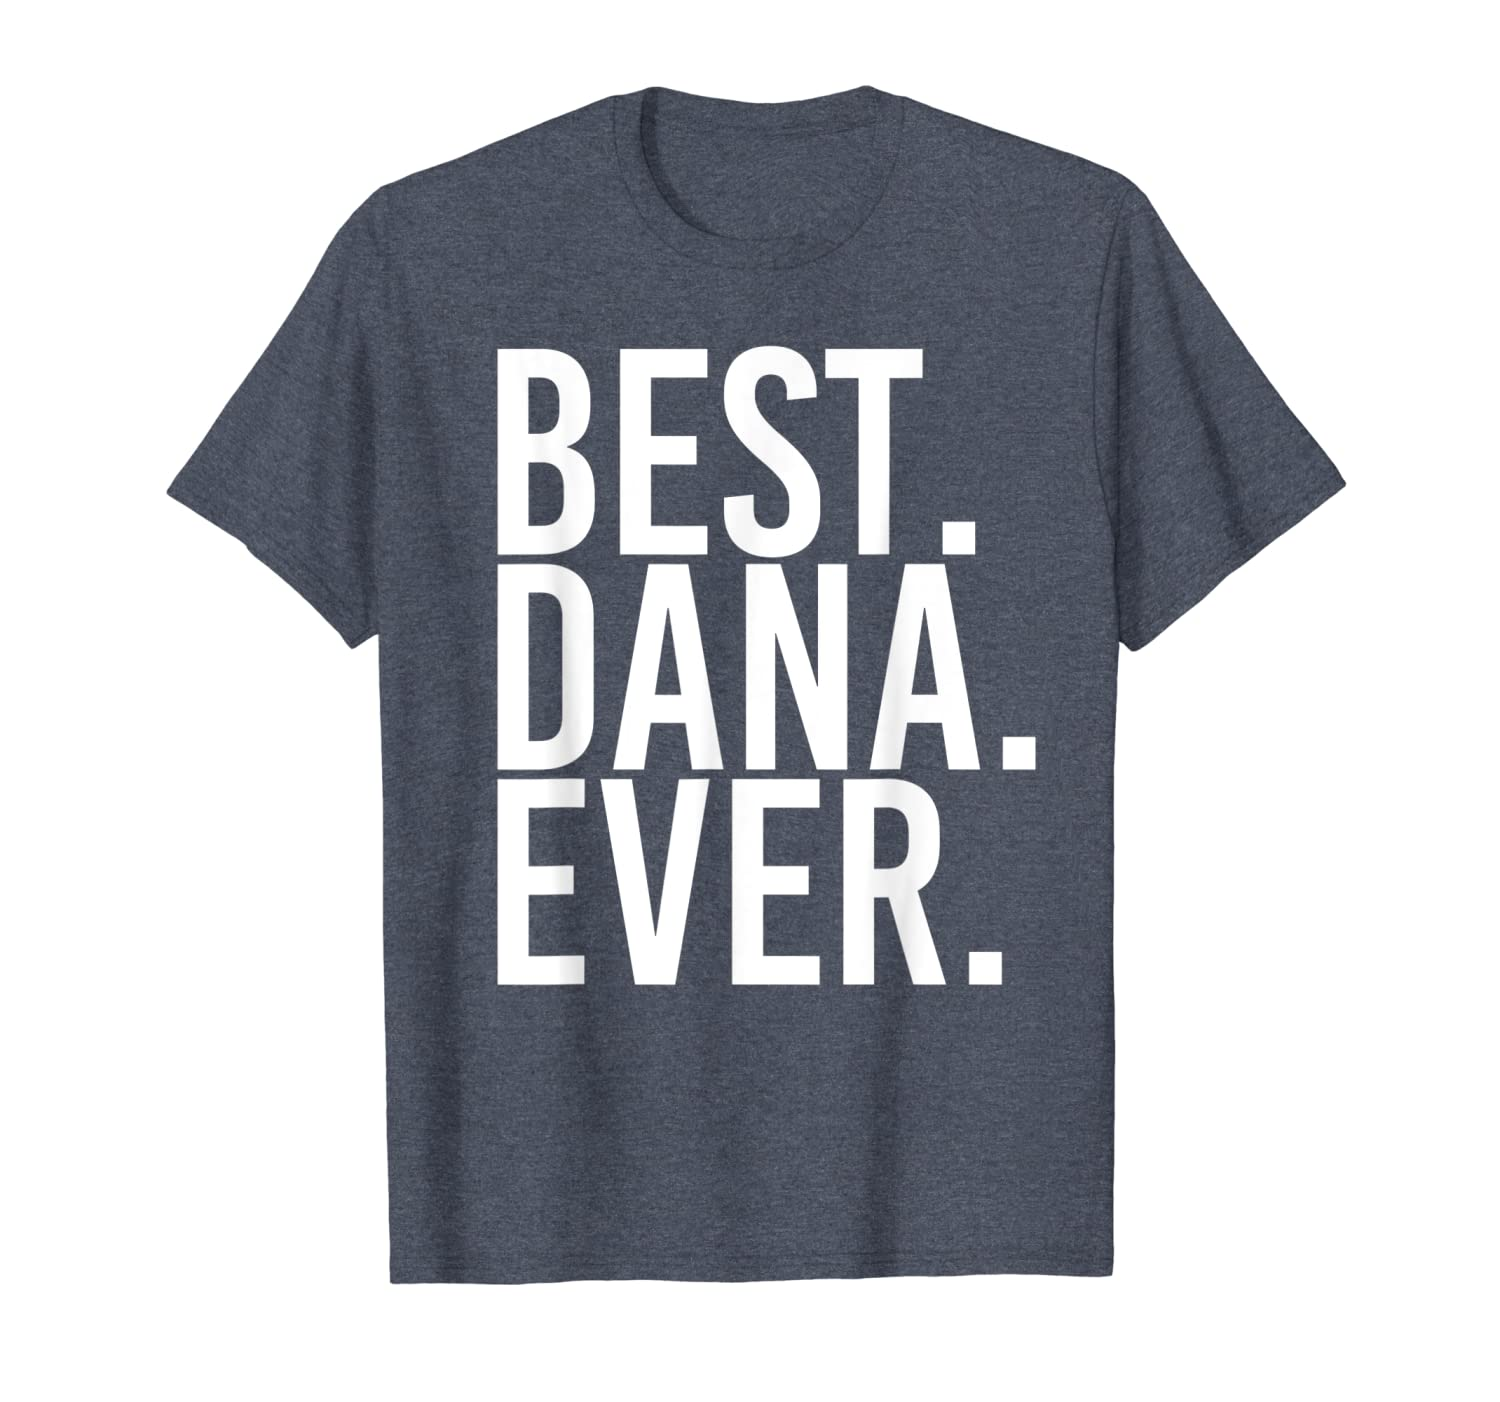 BEST. DANA. EVER. Funny Personalized Name Joke Gift Idea T-Shirt-TH